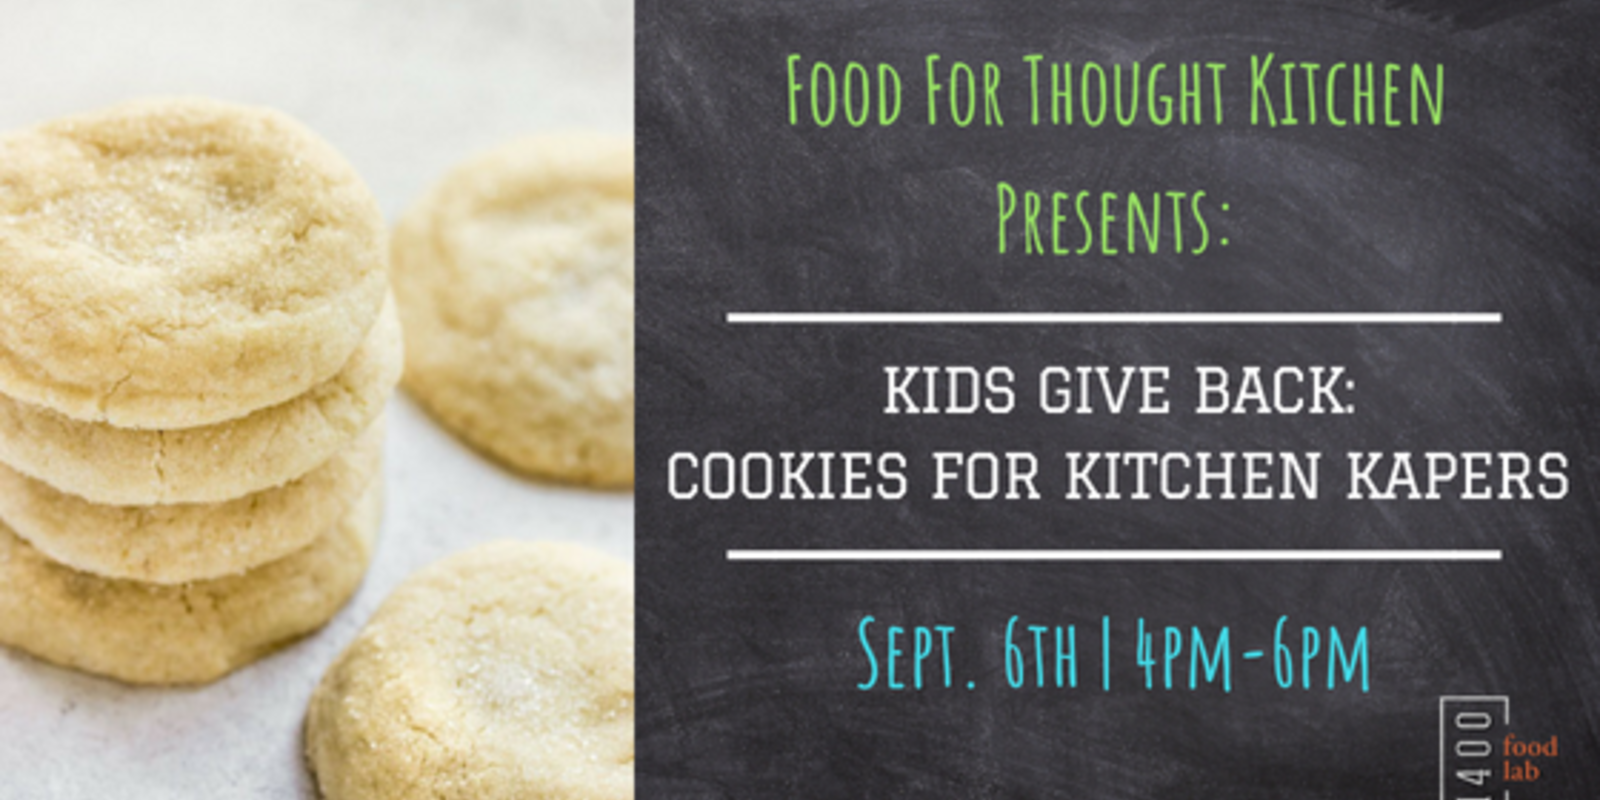 CLASS | Kids Give Back: Cookies For Kitchen Kapers